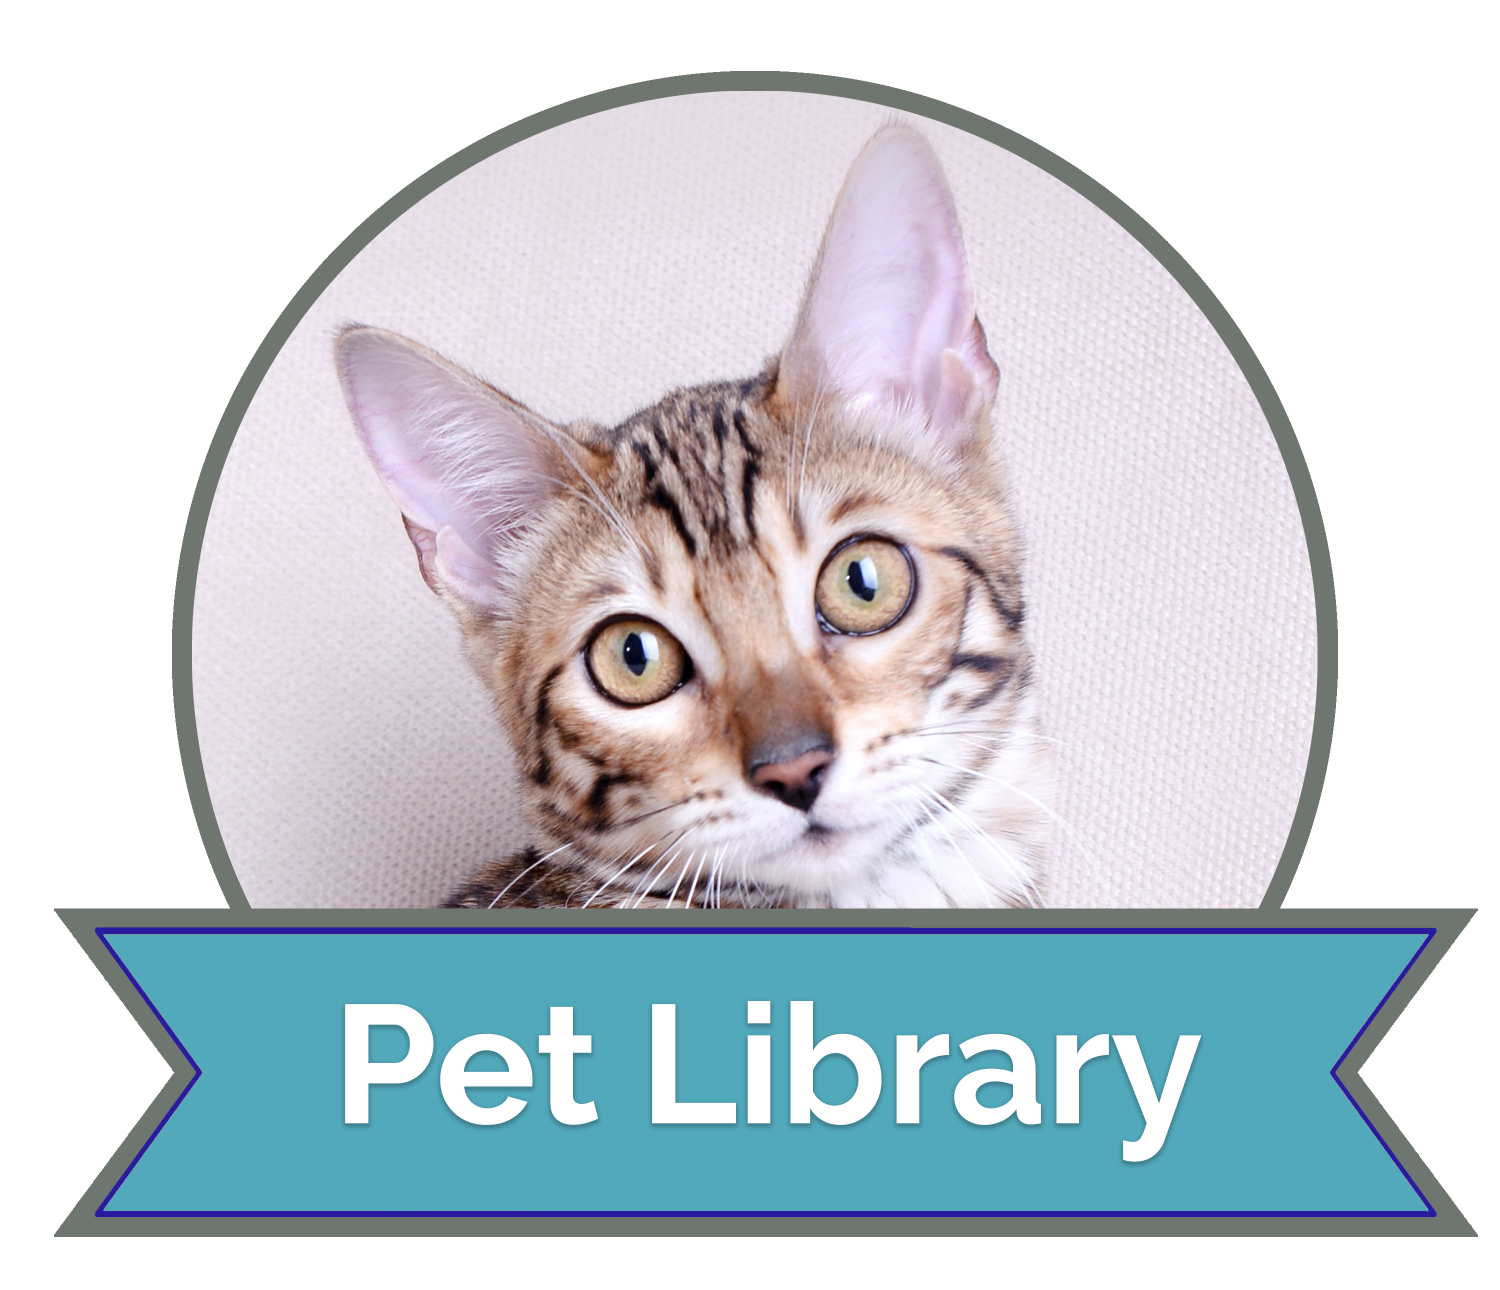 california vet hospital offers the VIN Client Information Library